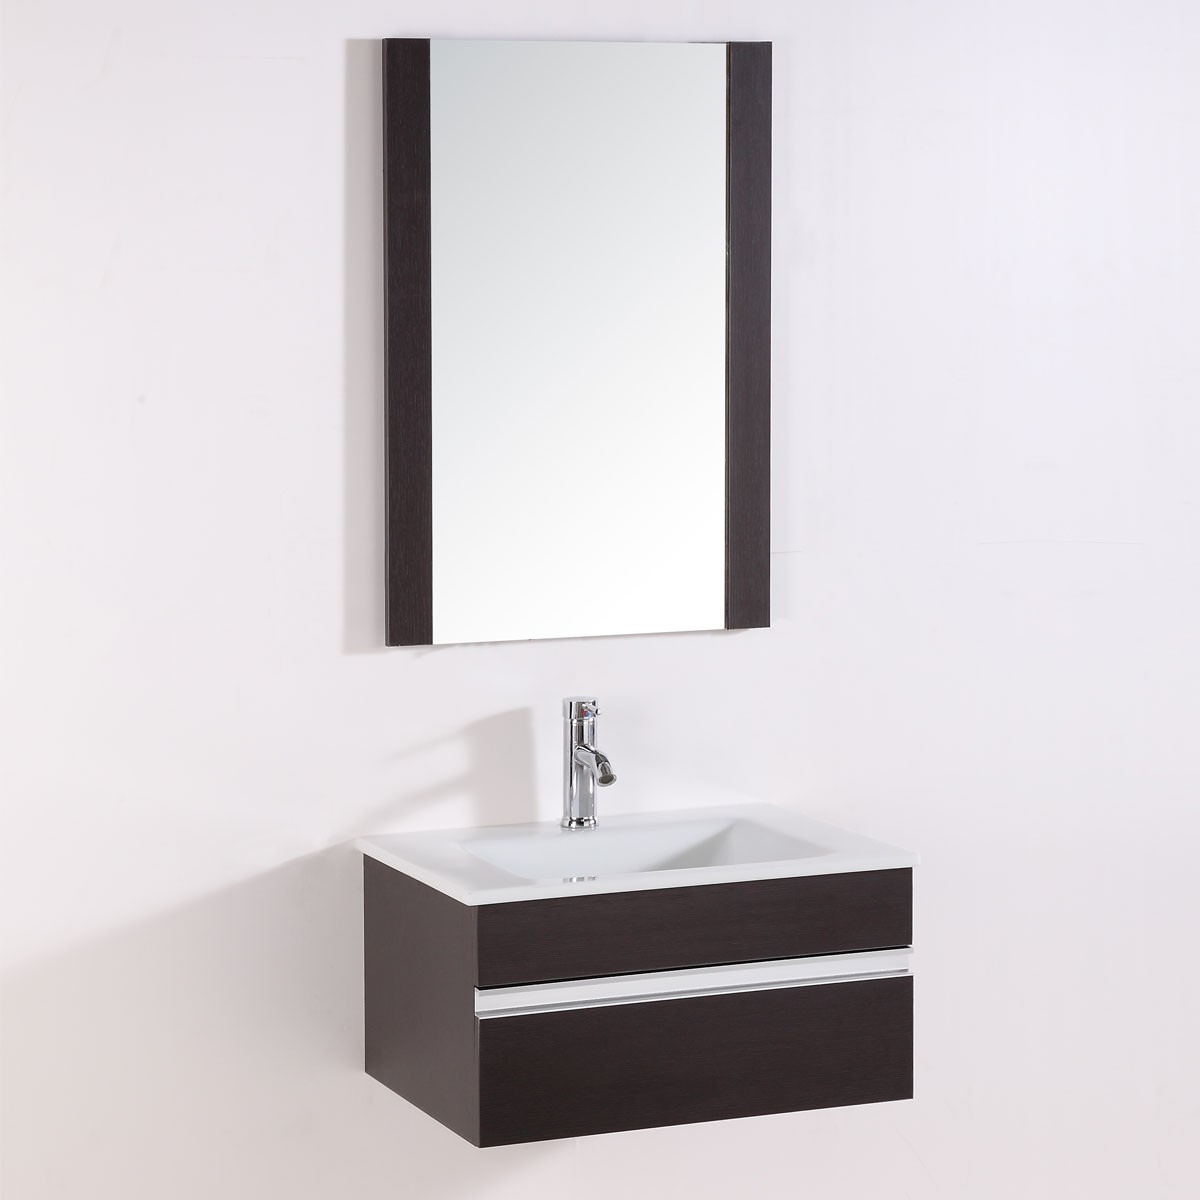 24 In. Wall-Mount Bathroom Vanity Set with Single Sink and Mirror ...